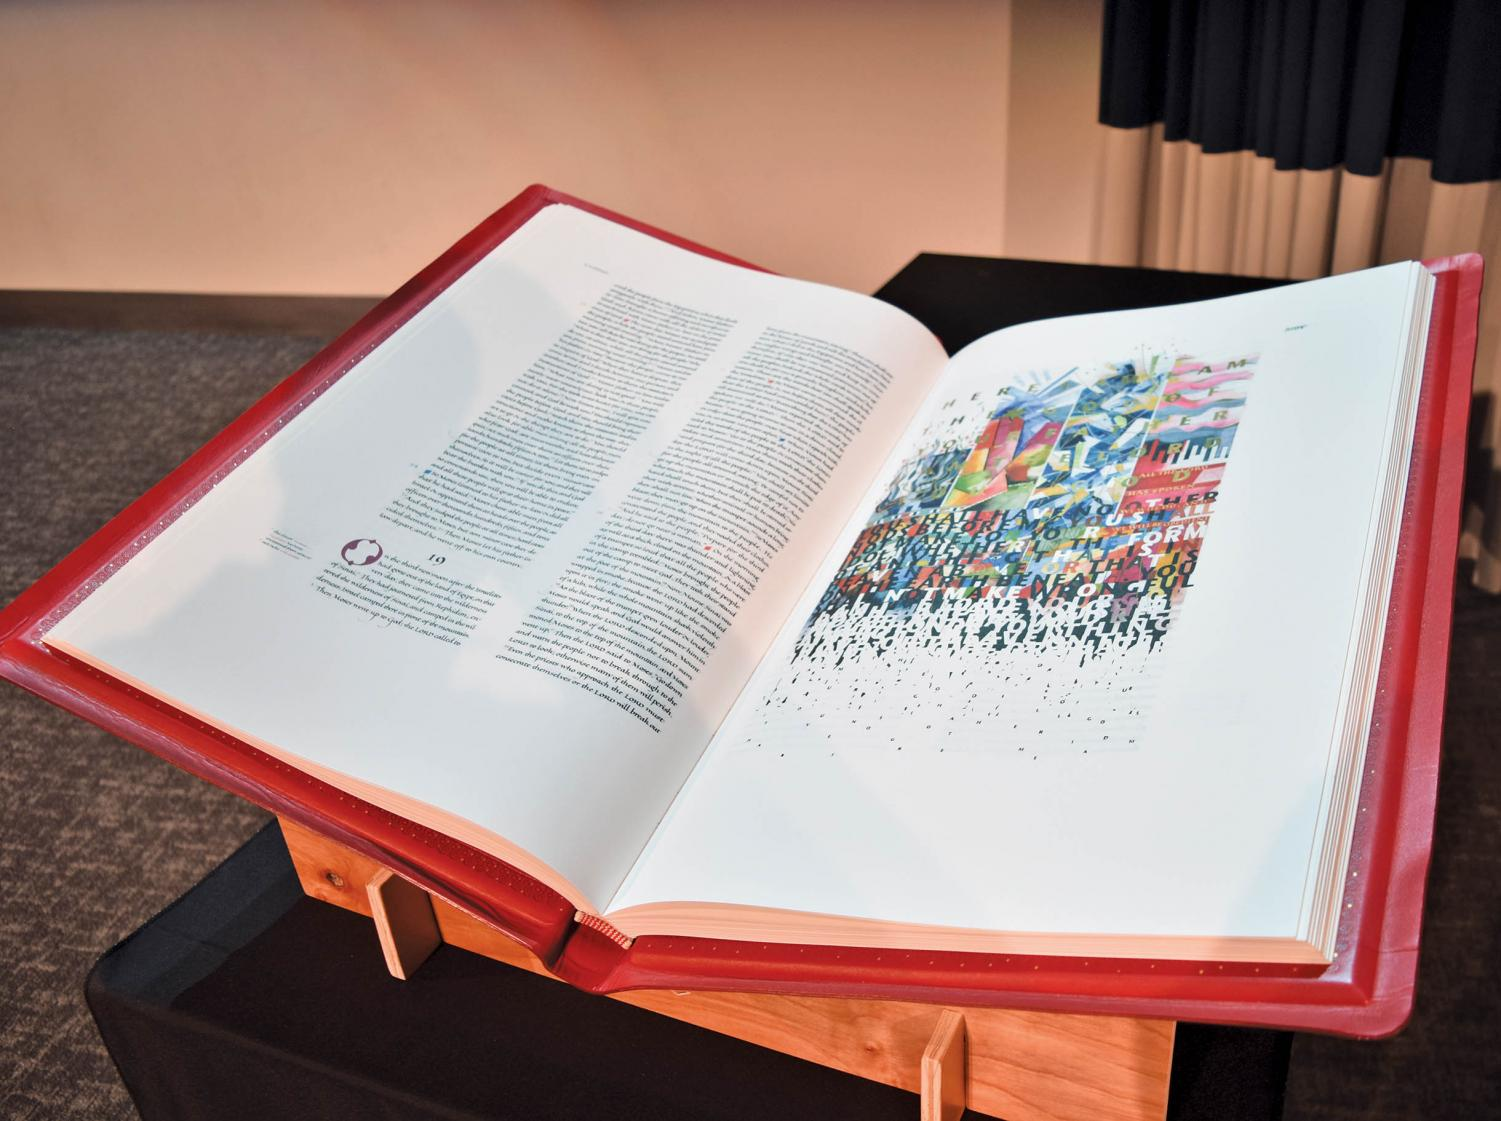 The Saint John's Bible is a hand illuminated and illustrated text. It is currently on display in the Munday Library.